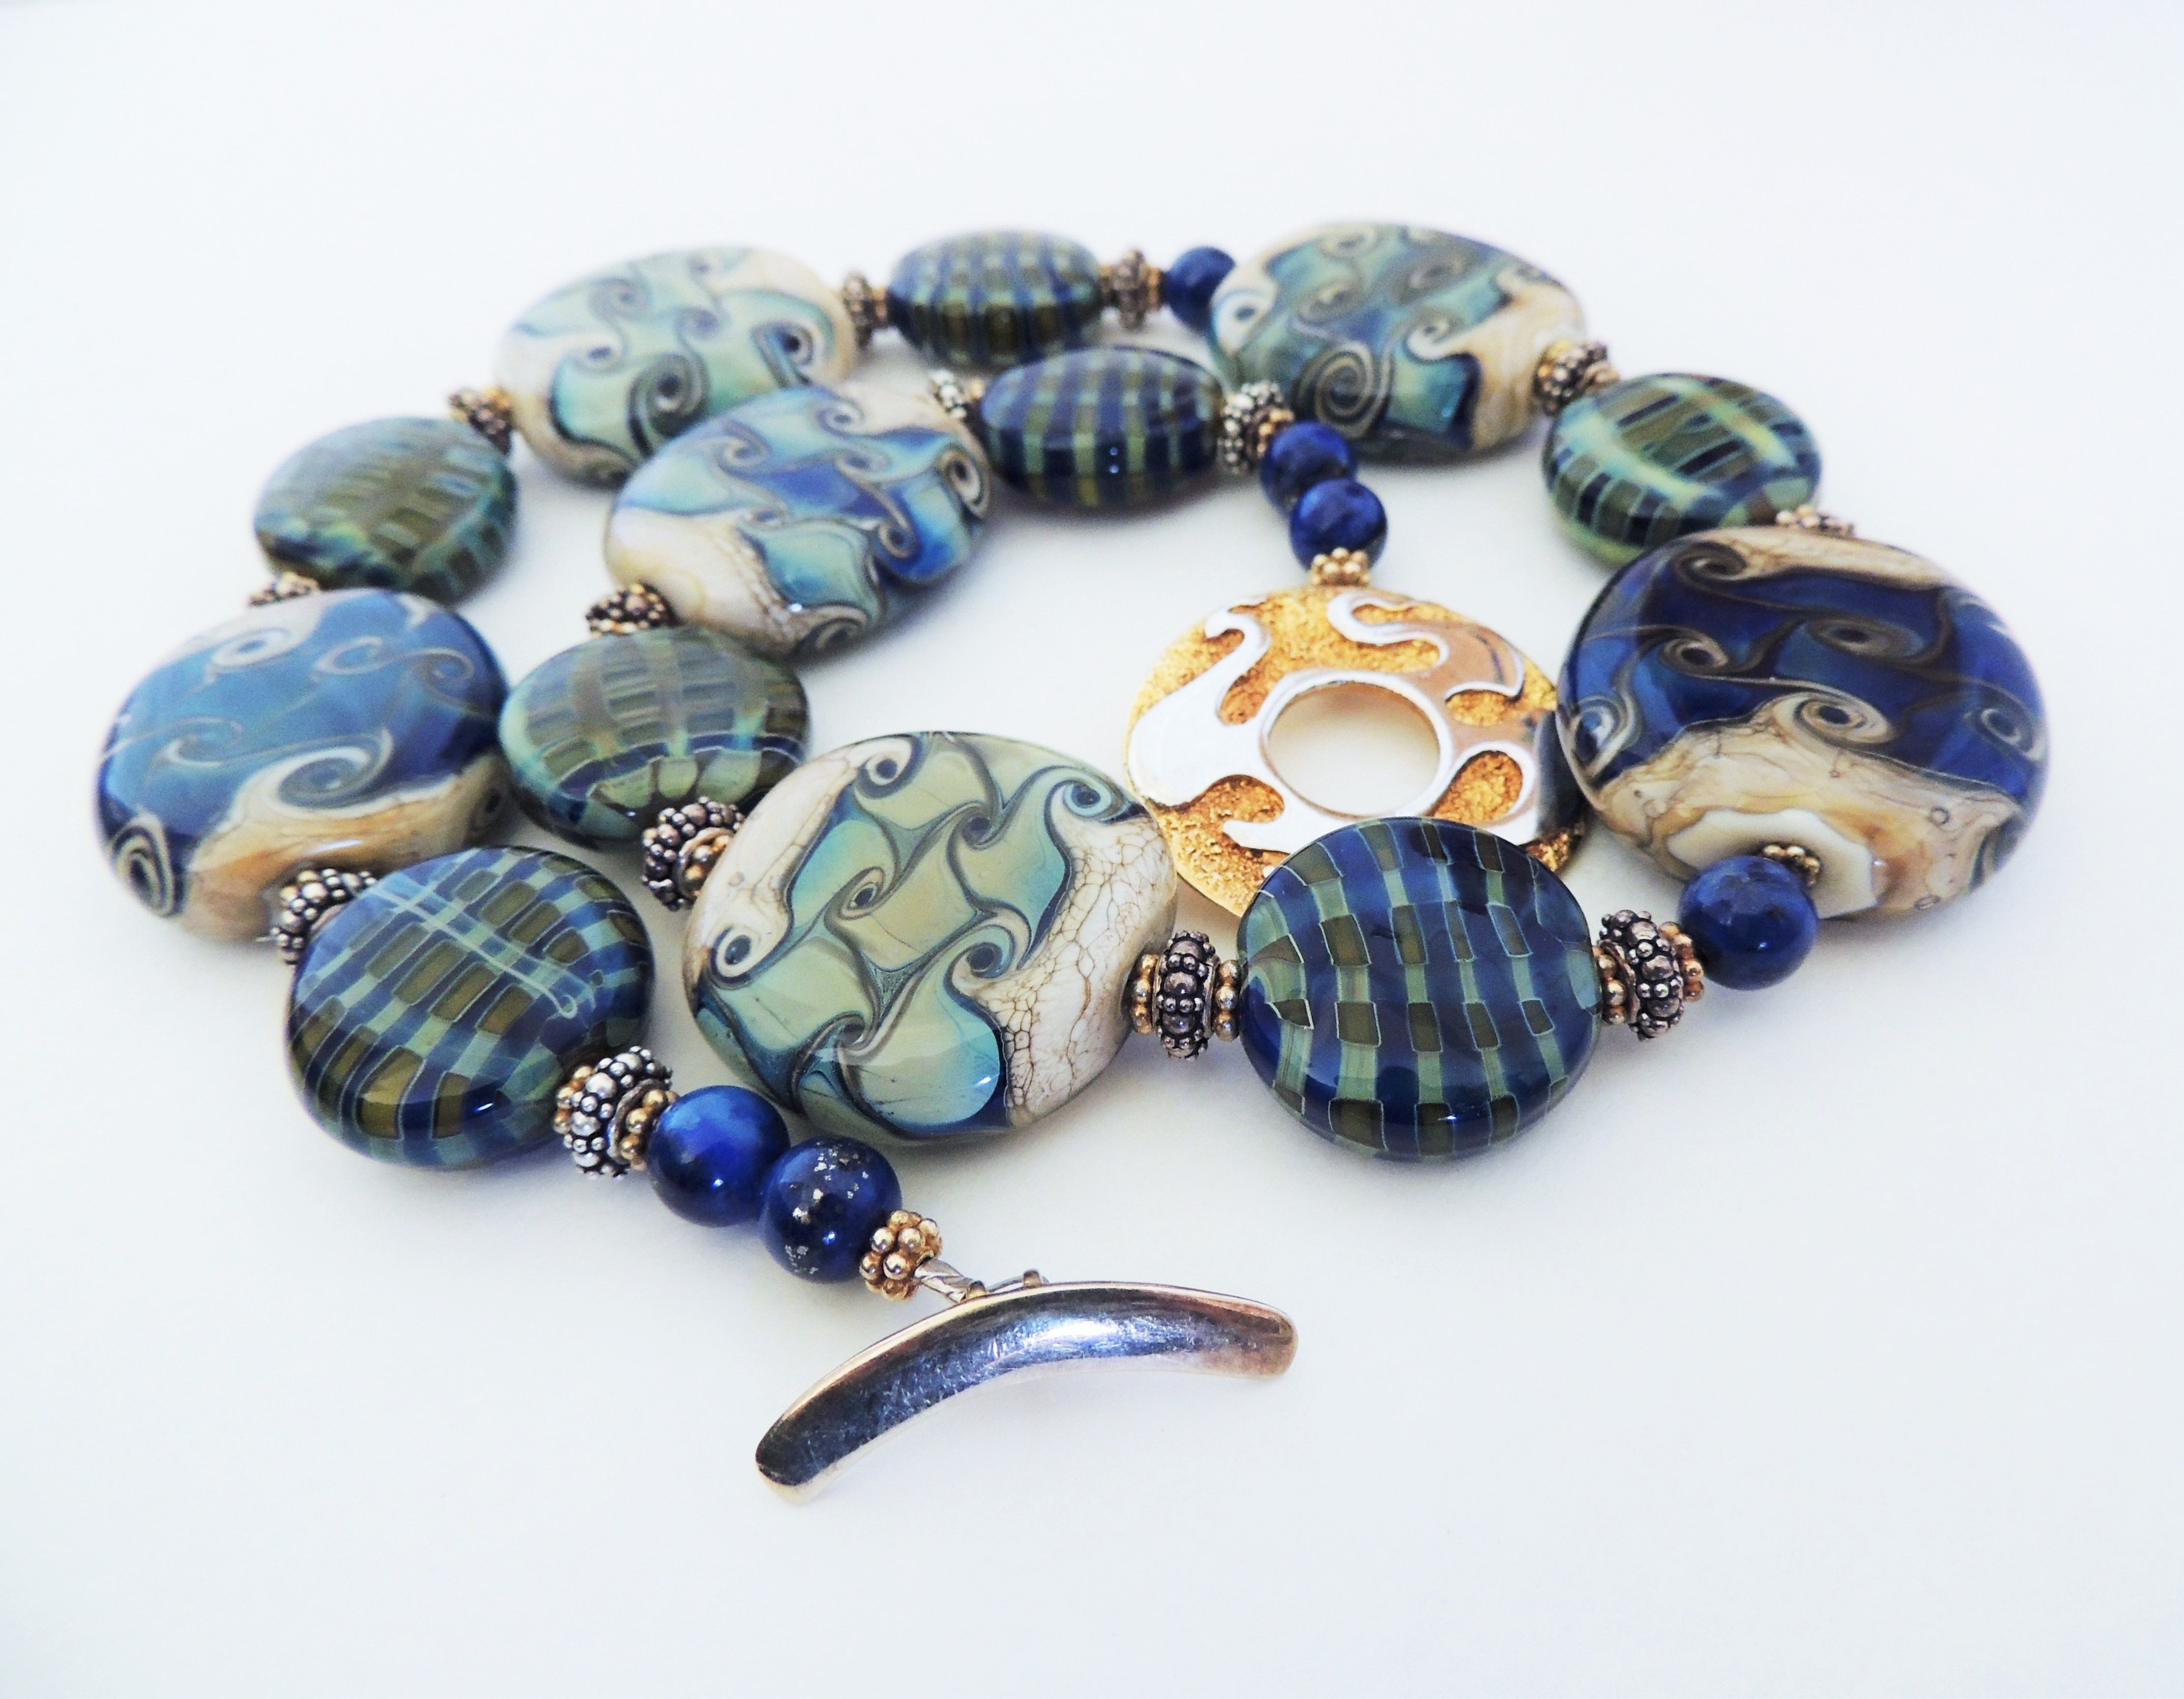 Stunning large artisan lampwork beads with sterling silver and gold vermeil.  This necklace is stunning!